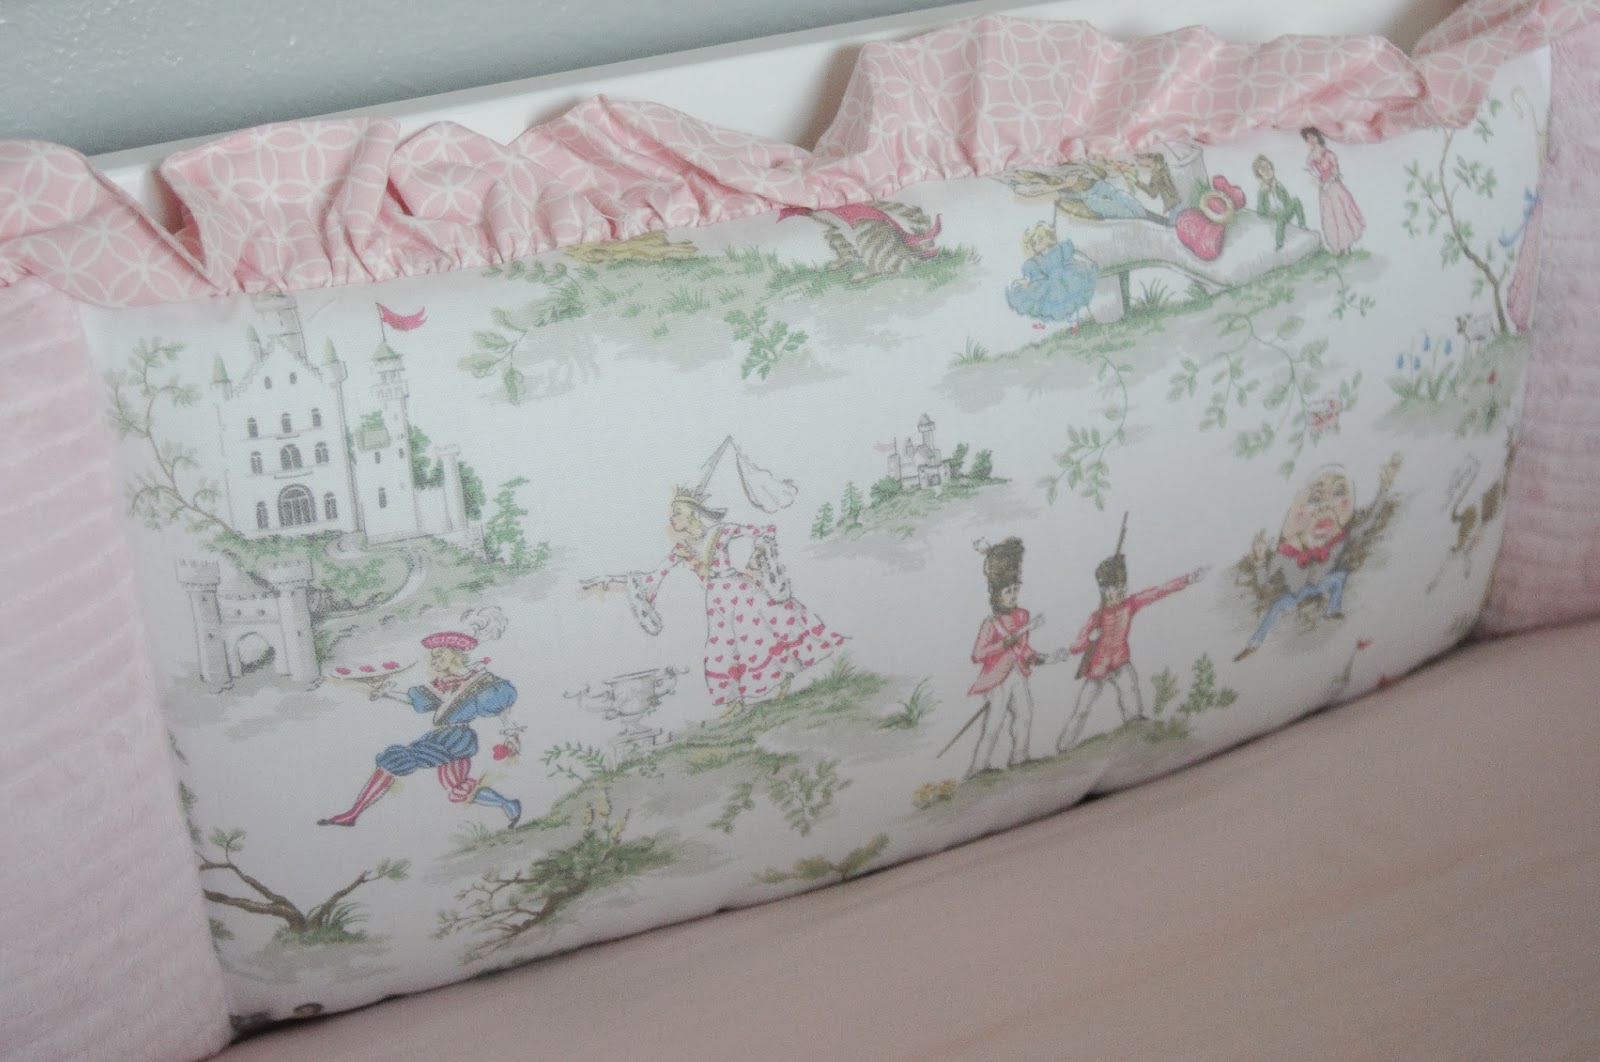 Nursery Rhyme Toile I Ve Always Loved And Grew Up Loving Rhymes Reading So Fell In Love With This Bedding